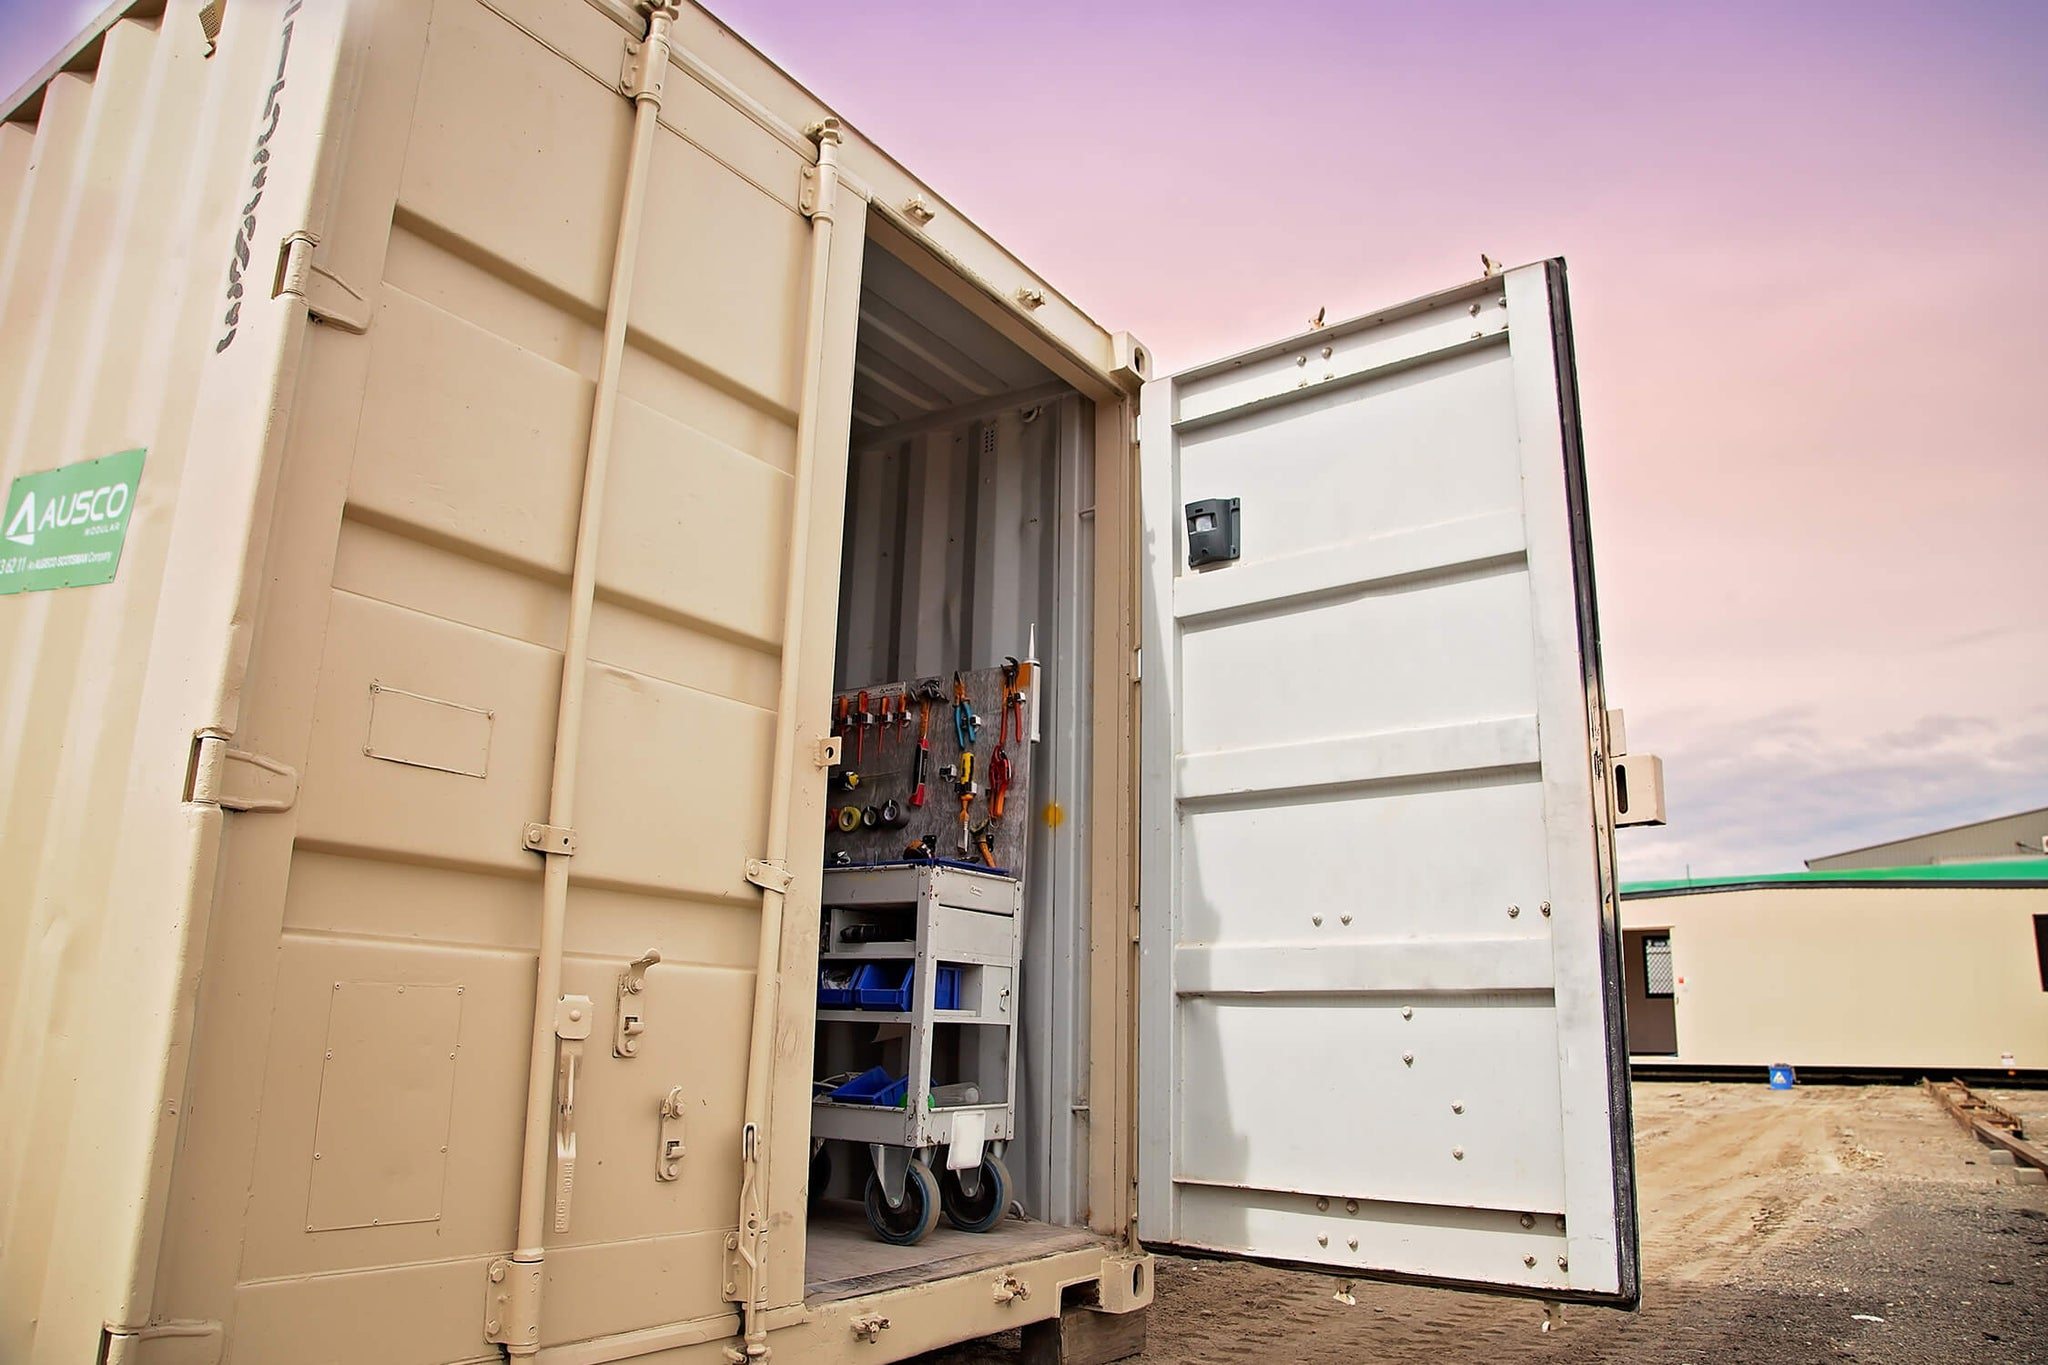 Stop theft in your container or shed